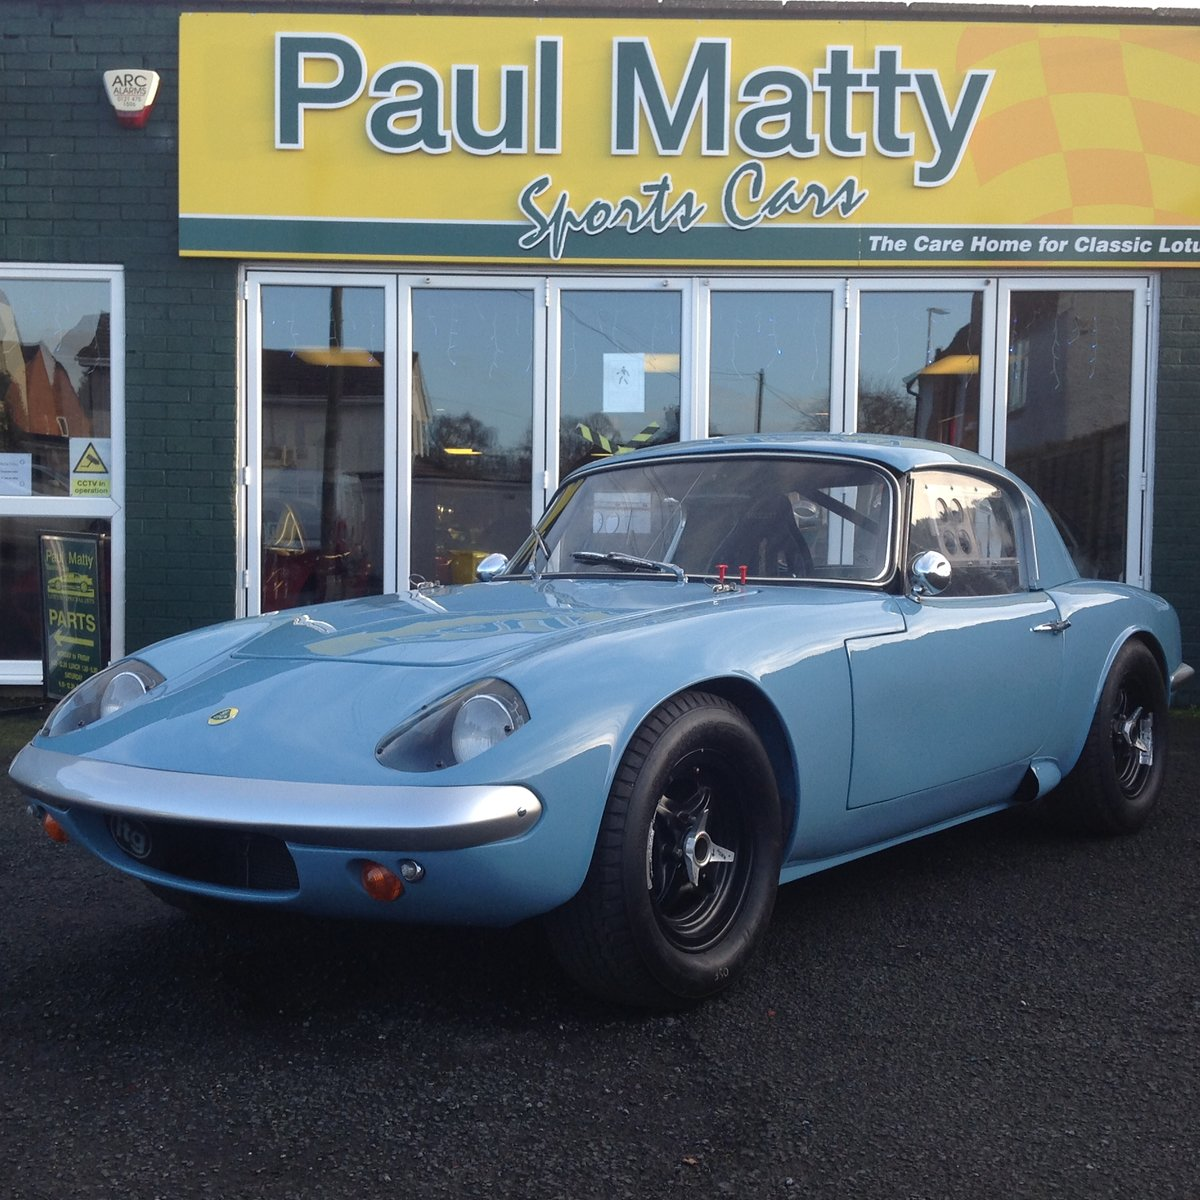 1964 Lotus Elan GTS For Sale (picture 1 of 12)